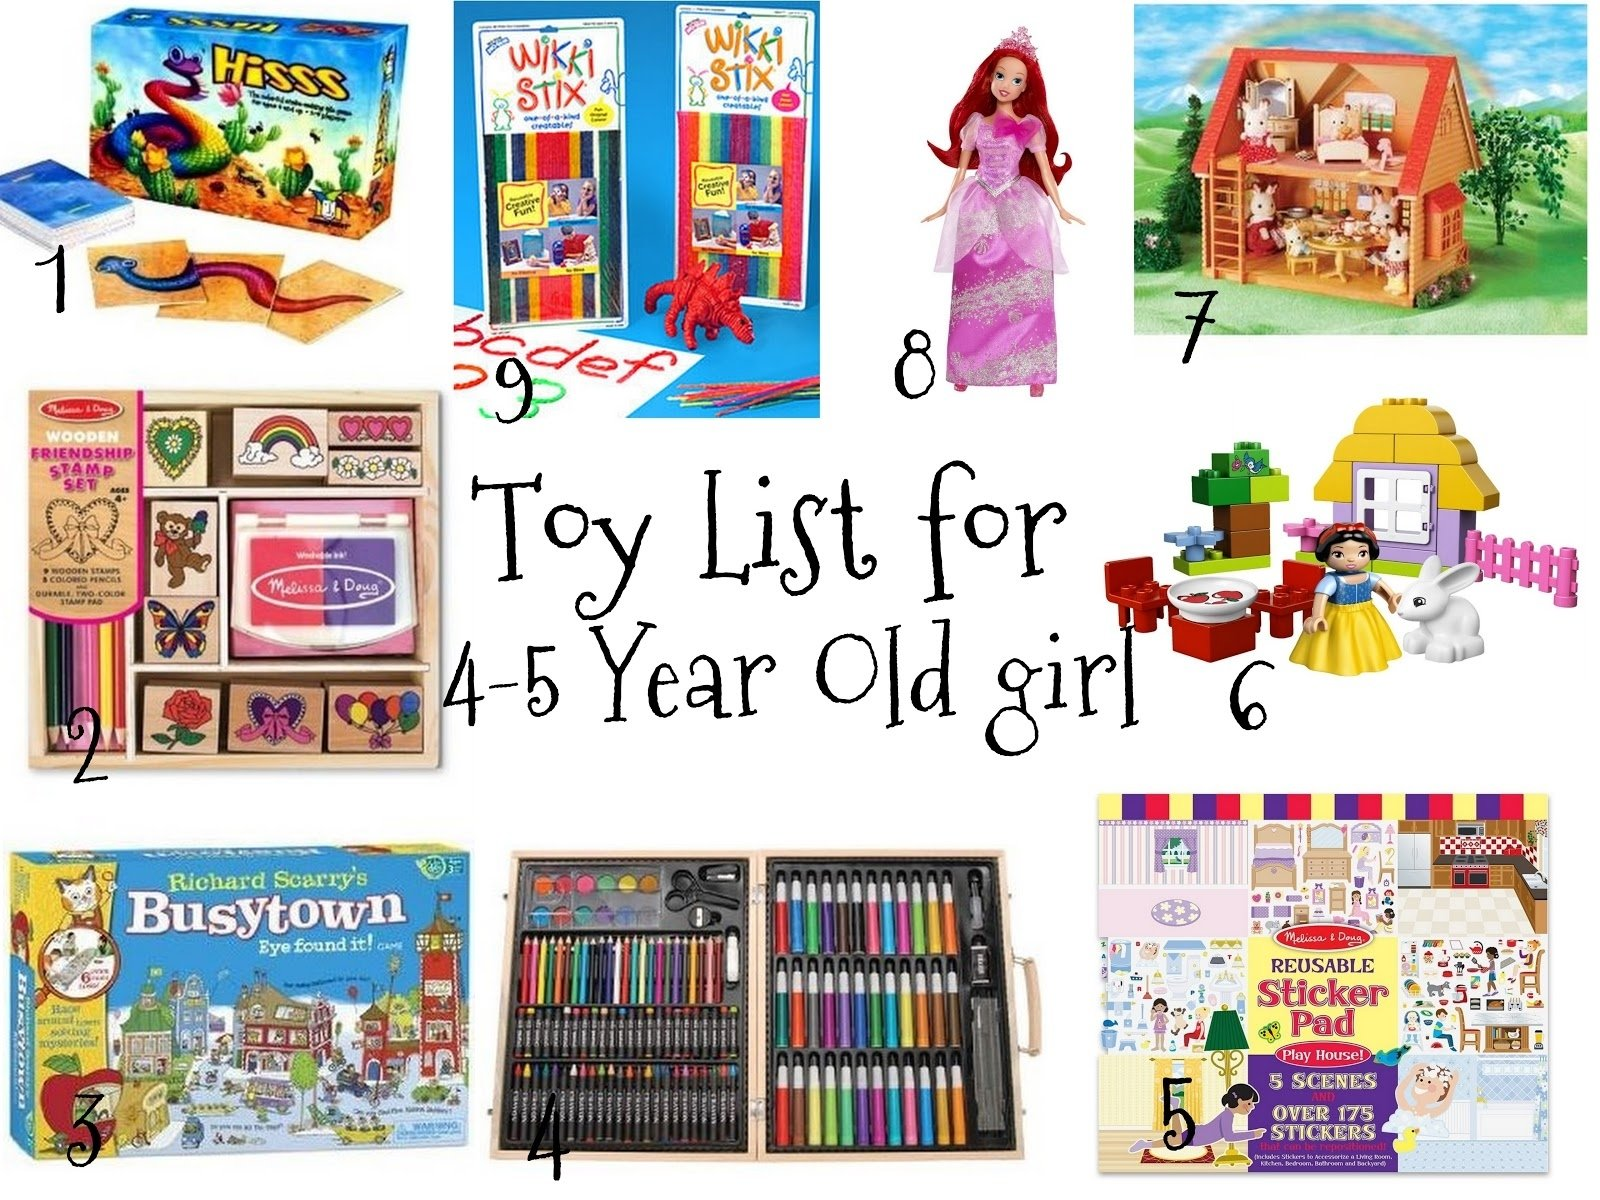 10 Attractive 4 Year Old Birthday Girl Gift Ideas favorites and things christmas toy list for 4 5 year old girls 15 2020